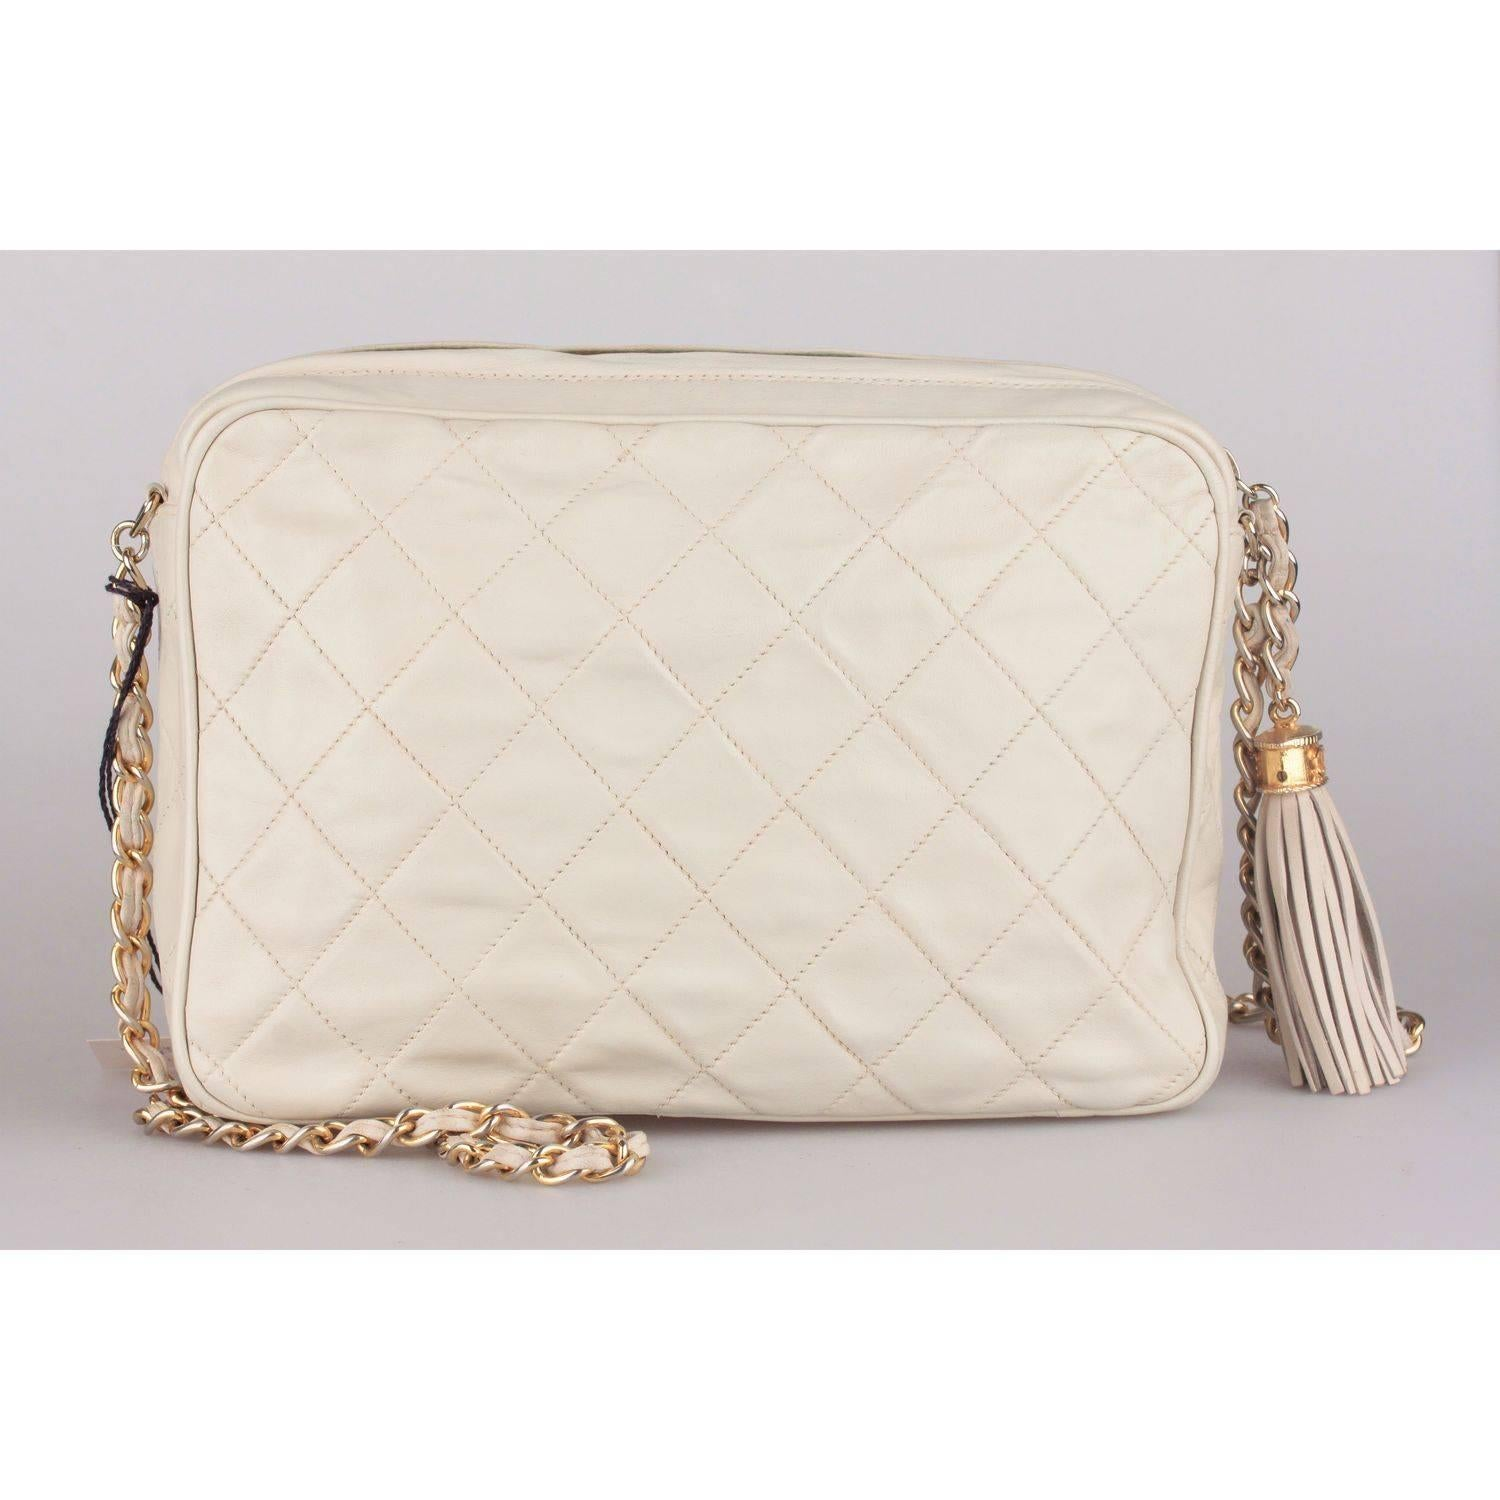 264ca41017de CHANEL Vintage Ivory QUILTED Leather CC Stitch CAMERA BAG w/ Tassel at  1stdibs